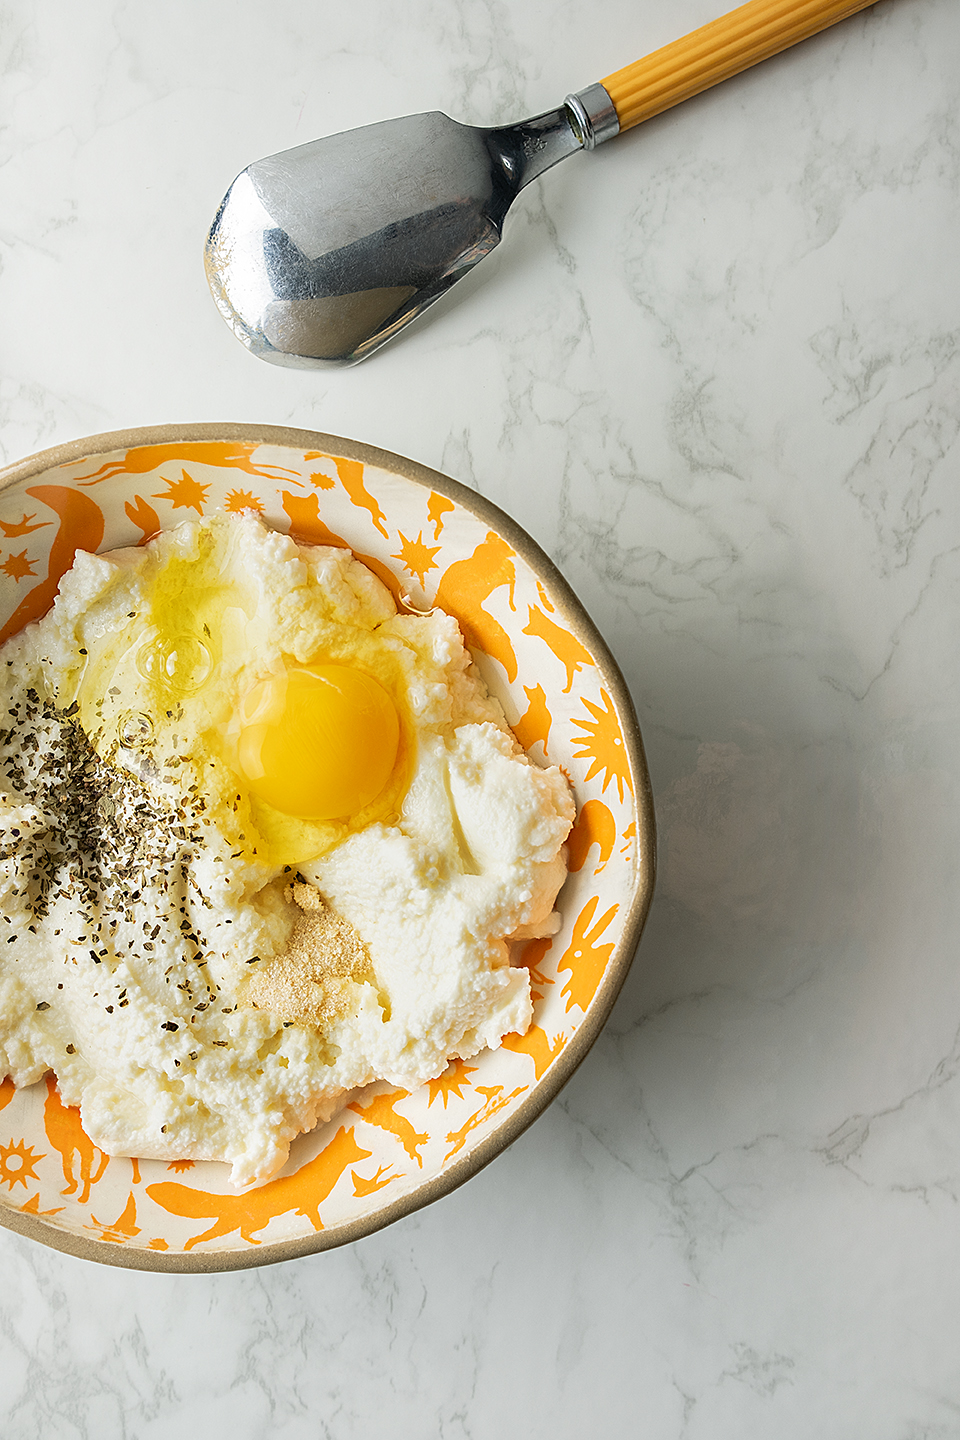 Orange bowl with fat free ricotta, egg and seasoning on a marble background with vintage spoon.